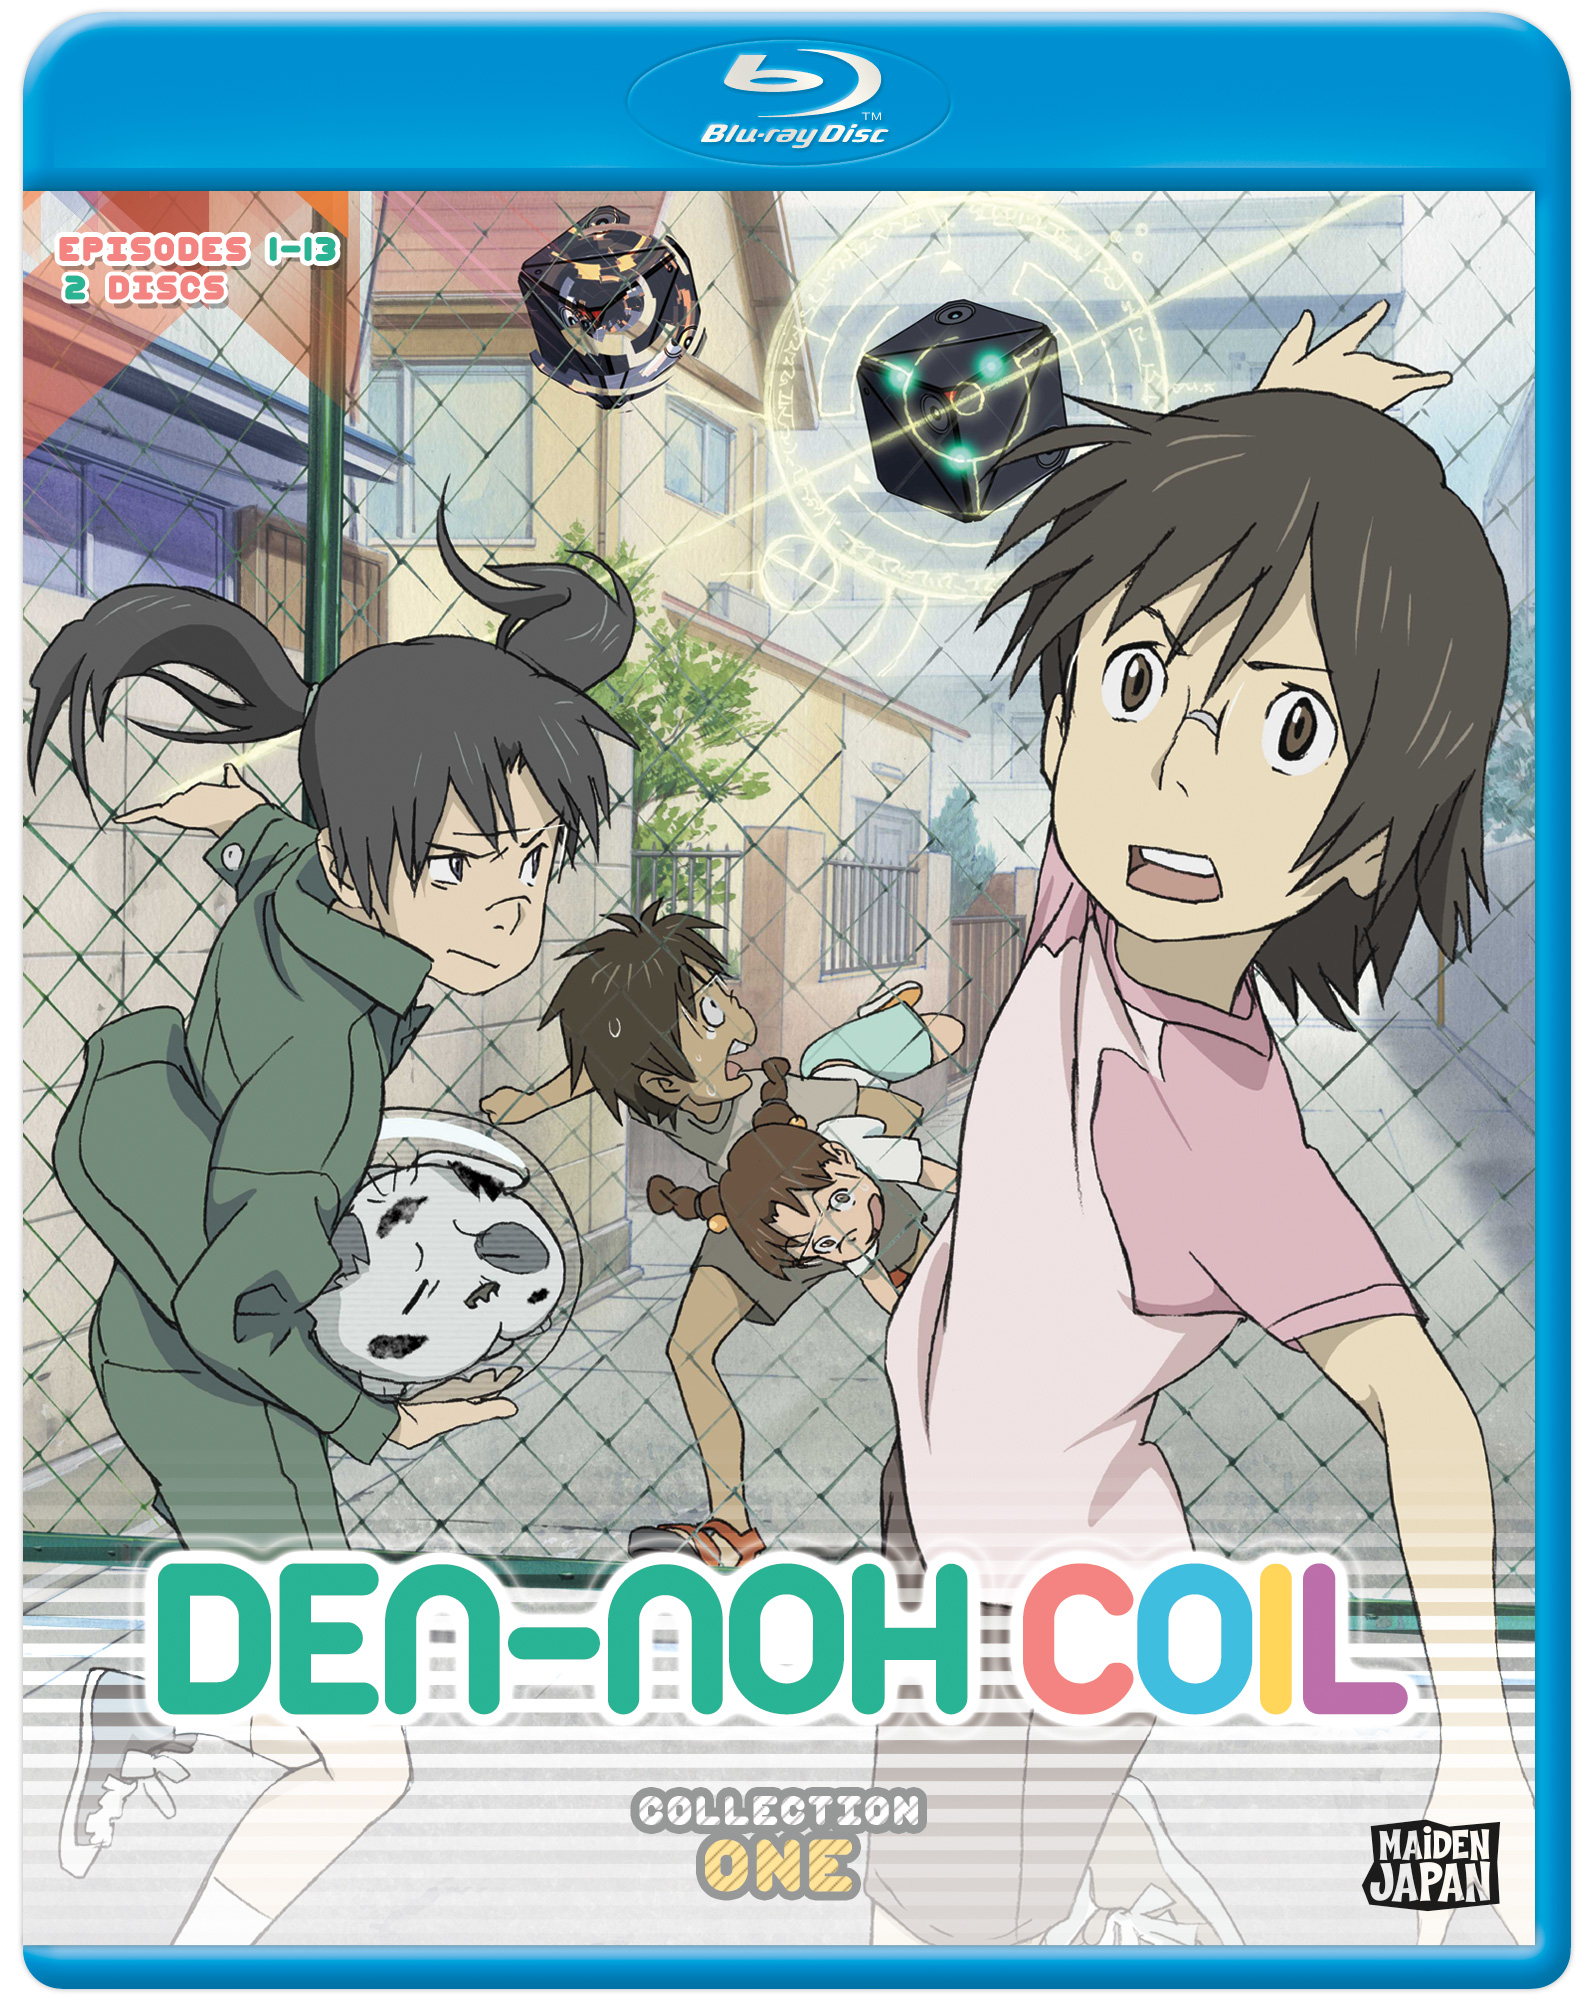 Den-noh Coil Collection 1 Blu-ray 814131014191